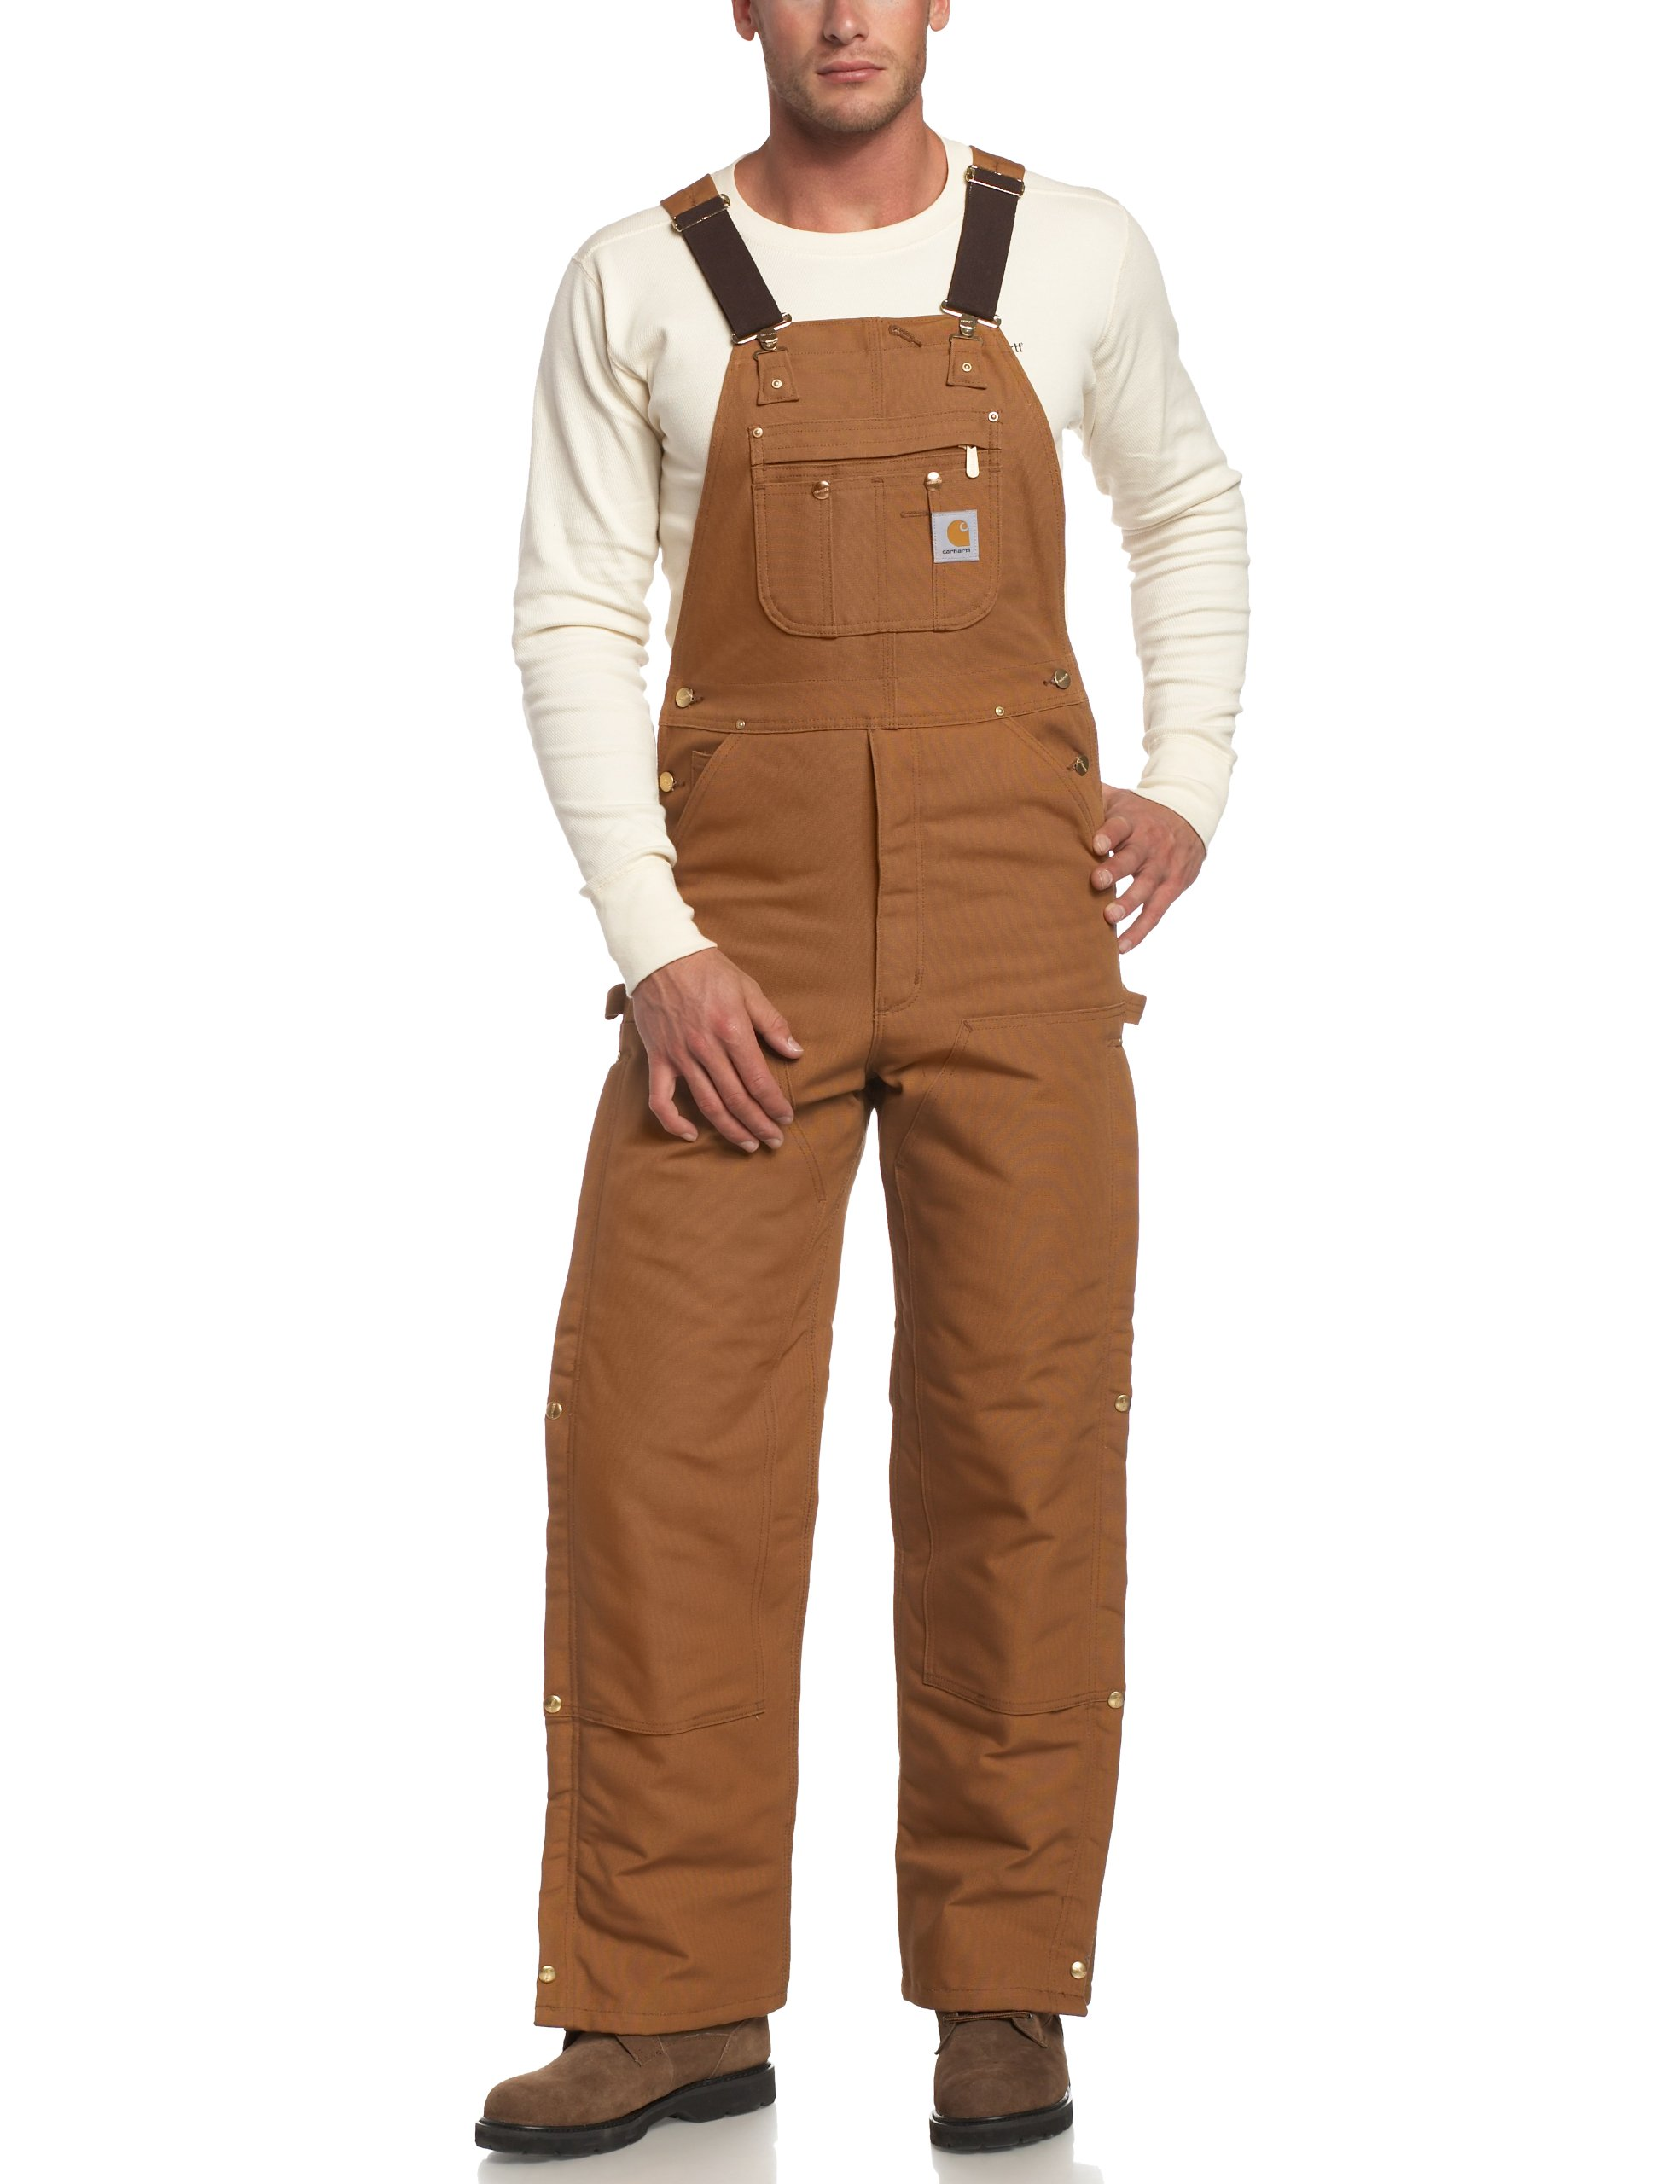 Carhartt Men's Quilt Lined Zip To Thigh Bib Overalls R41